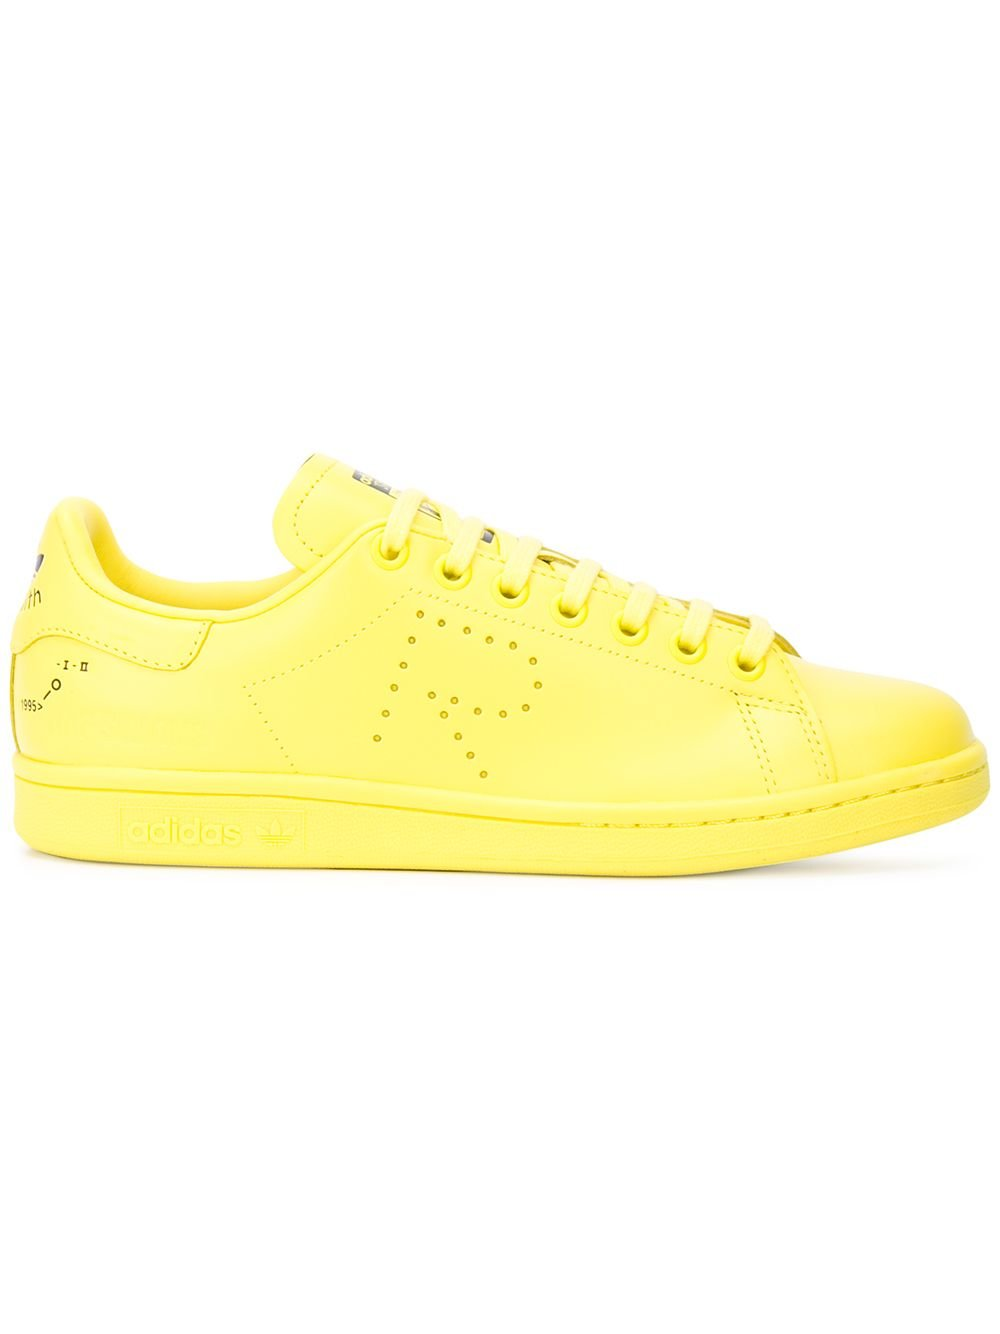 separation shoes 9c499 96493 Adidas x Raf Simons